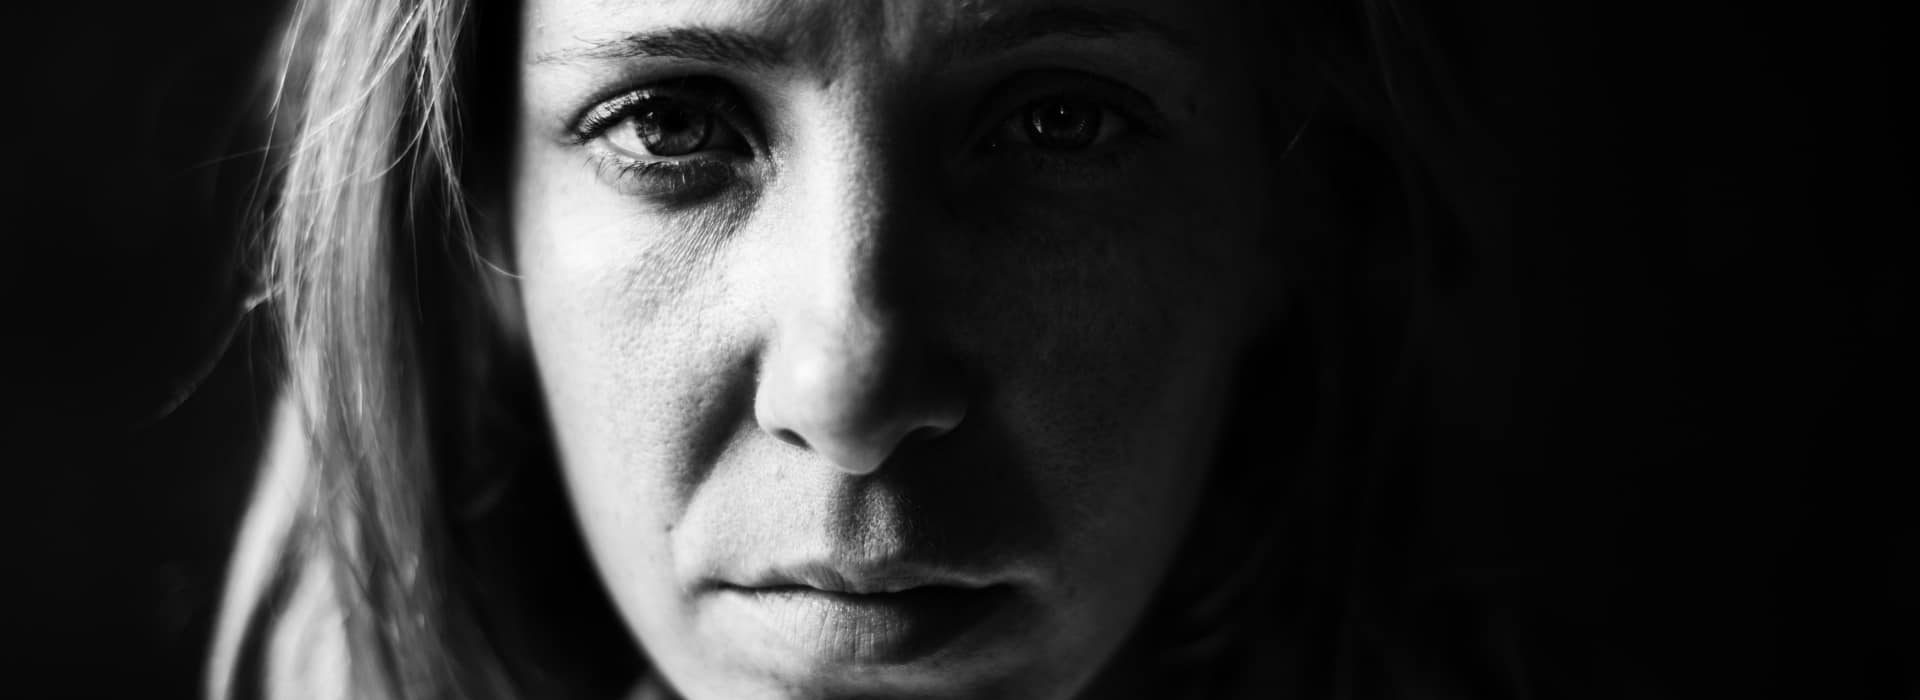 abuse victims forced to return to their abuser